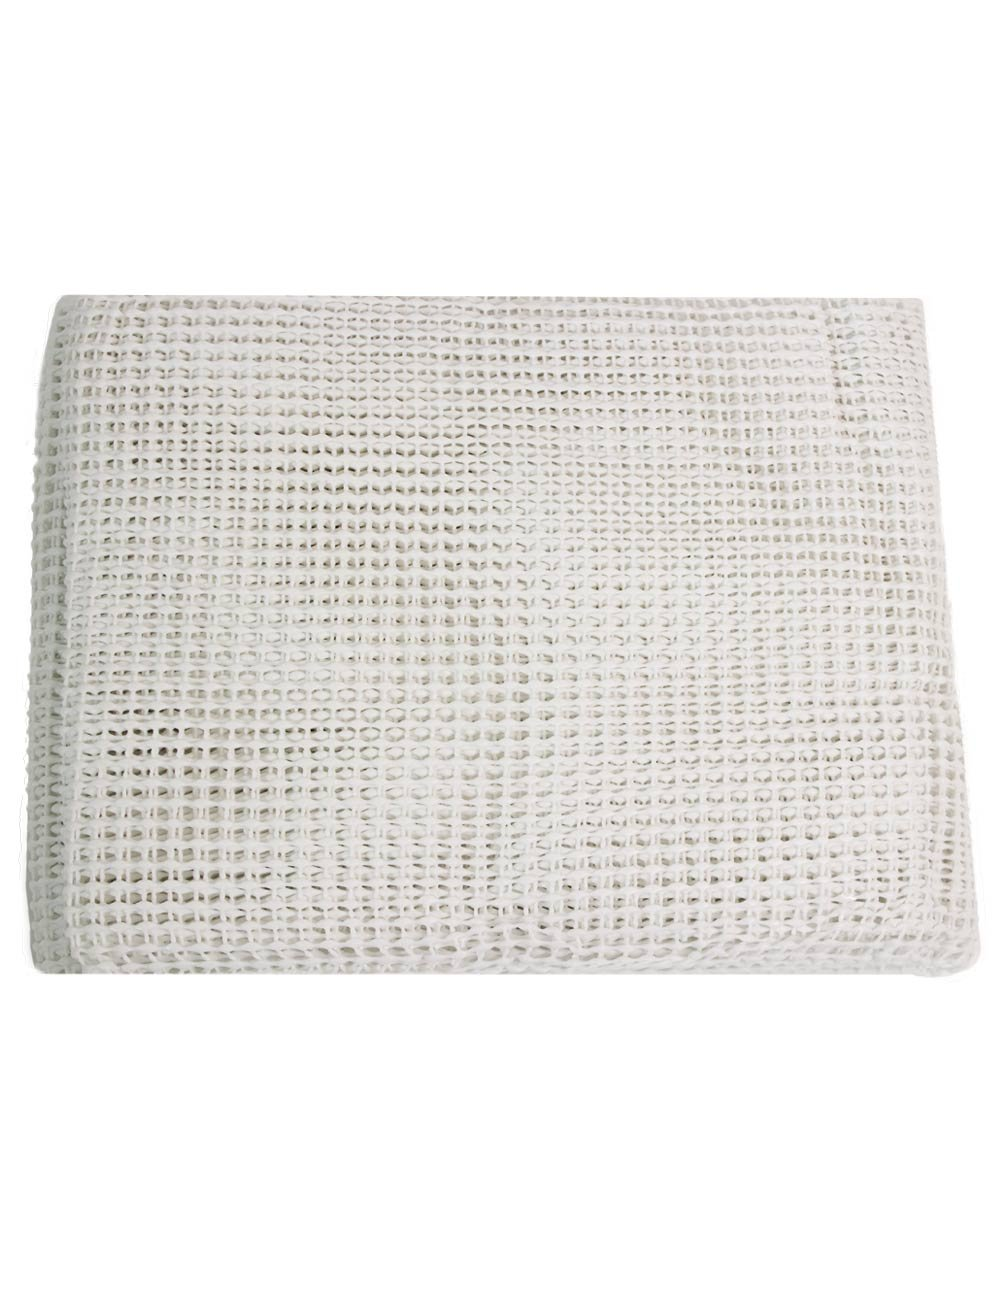 1400 Series Rug Pad White 5' X 8' (152 x 244 cm) Cleverbrand Inc.